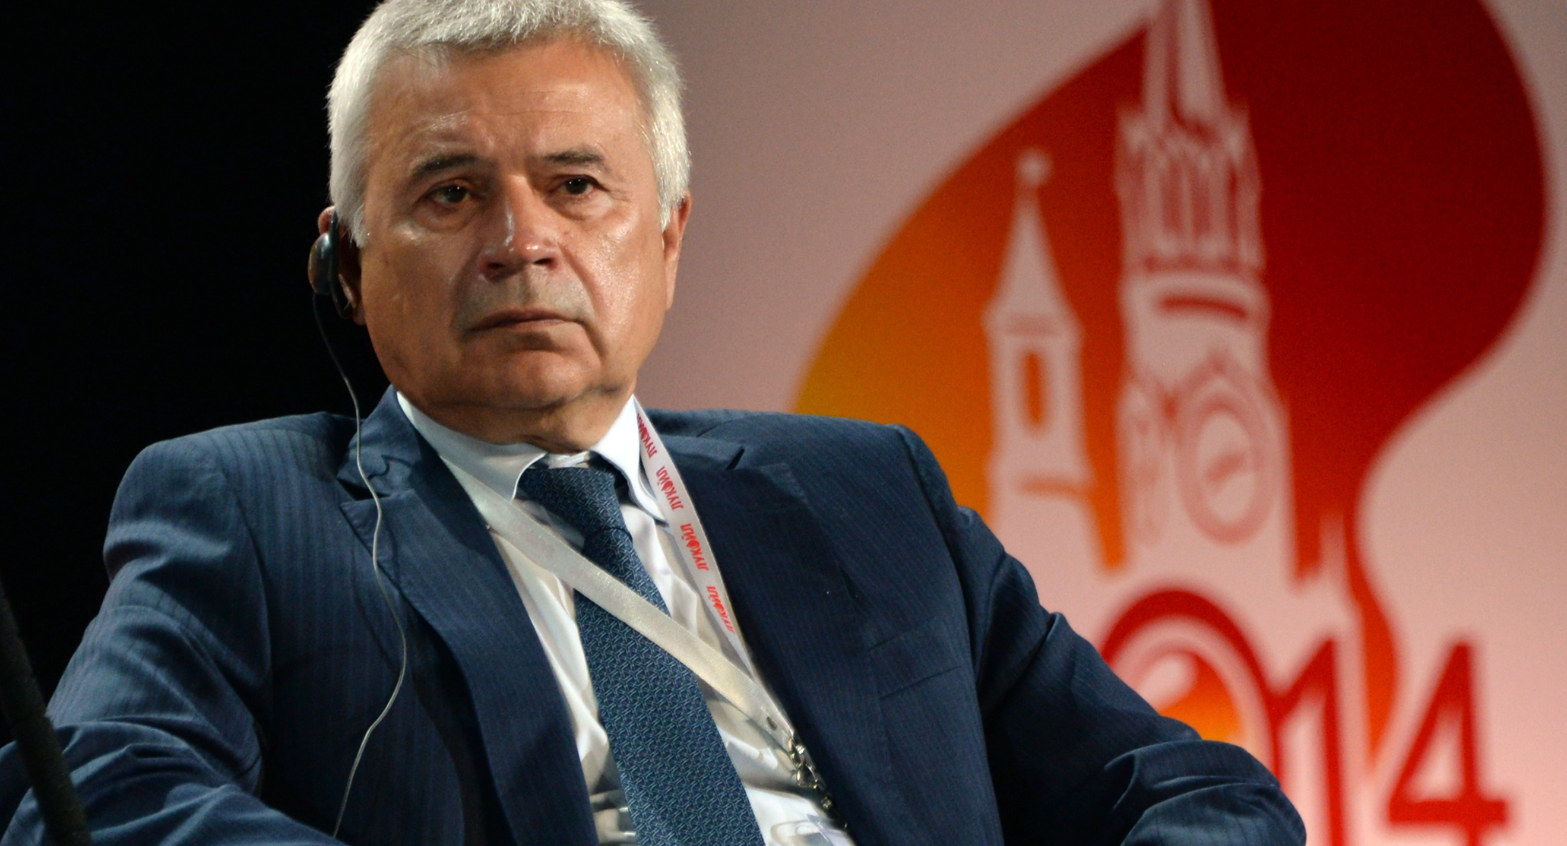 LUKoil president Vagit Alikperov, attends a plenary session of the World Petroleum Congress in Moscow, on June 16, 2014. (Vasily Maximov/AFP/Getty Images)